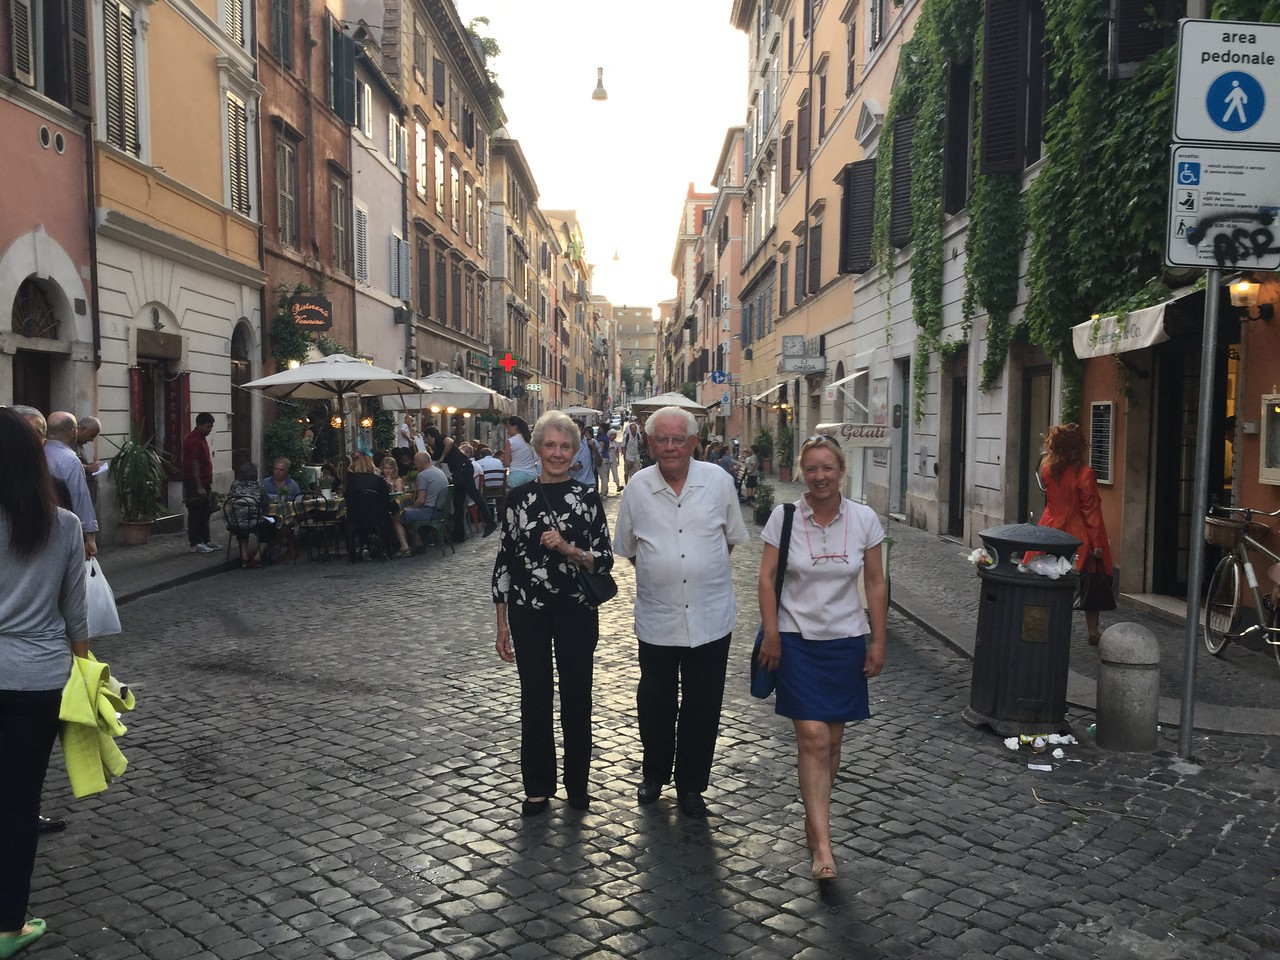 Off to dinner just outside the Vatican walls